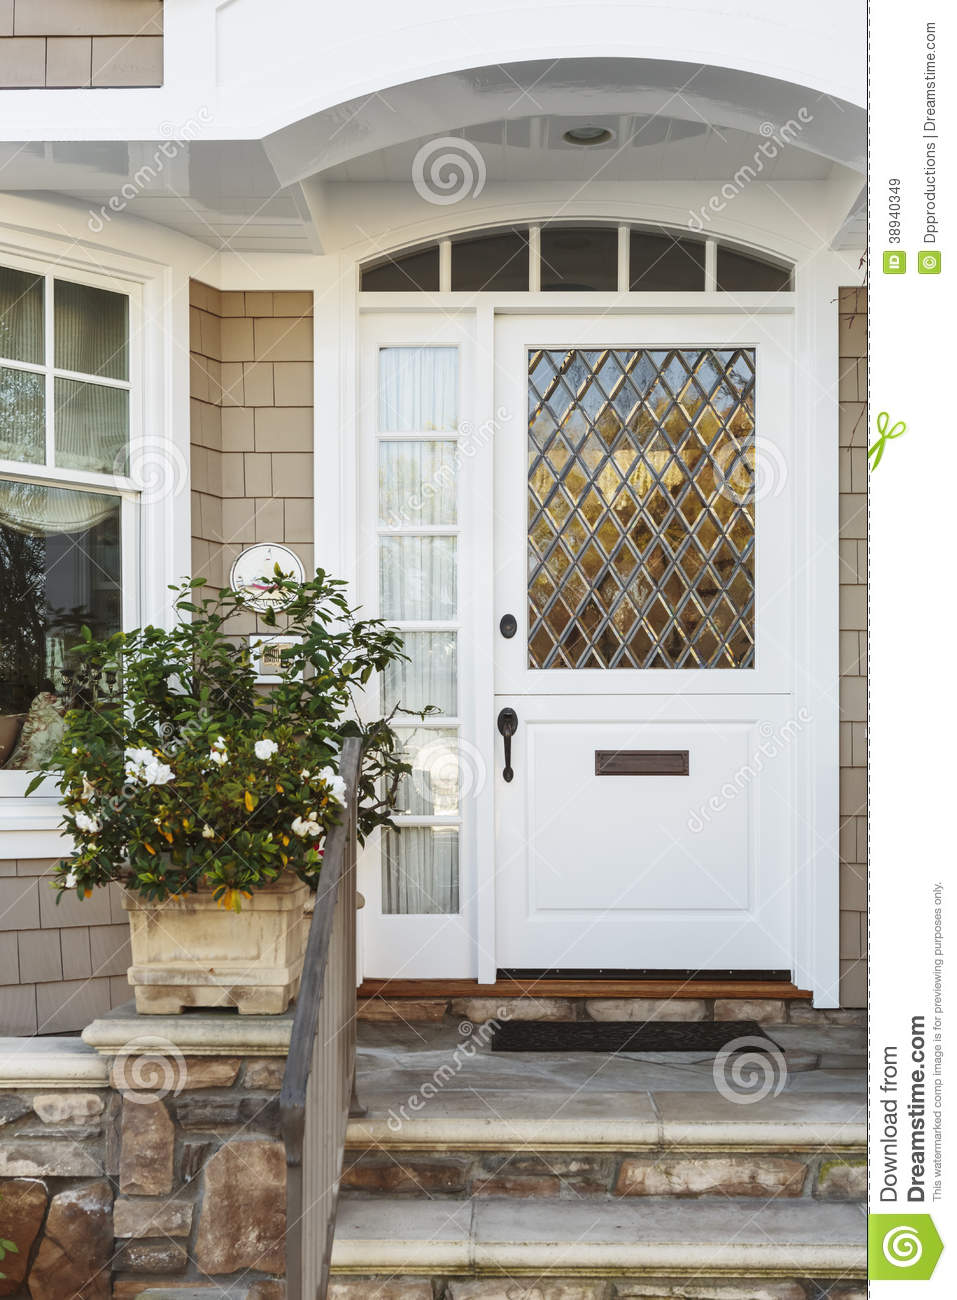 White Front Door Of Upscale Beige Home Stock Image Image